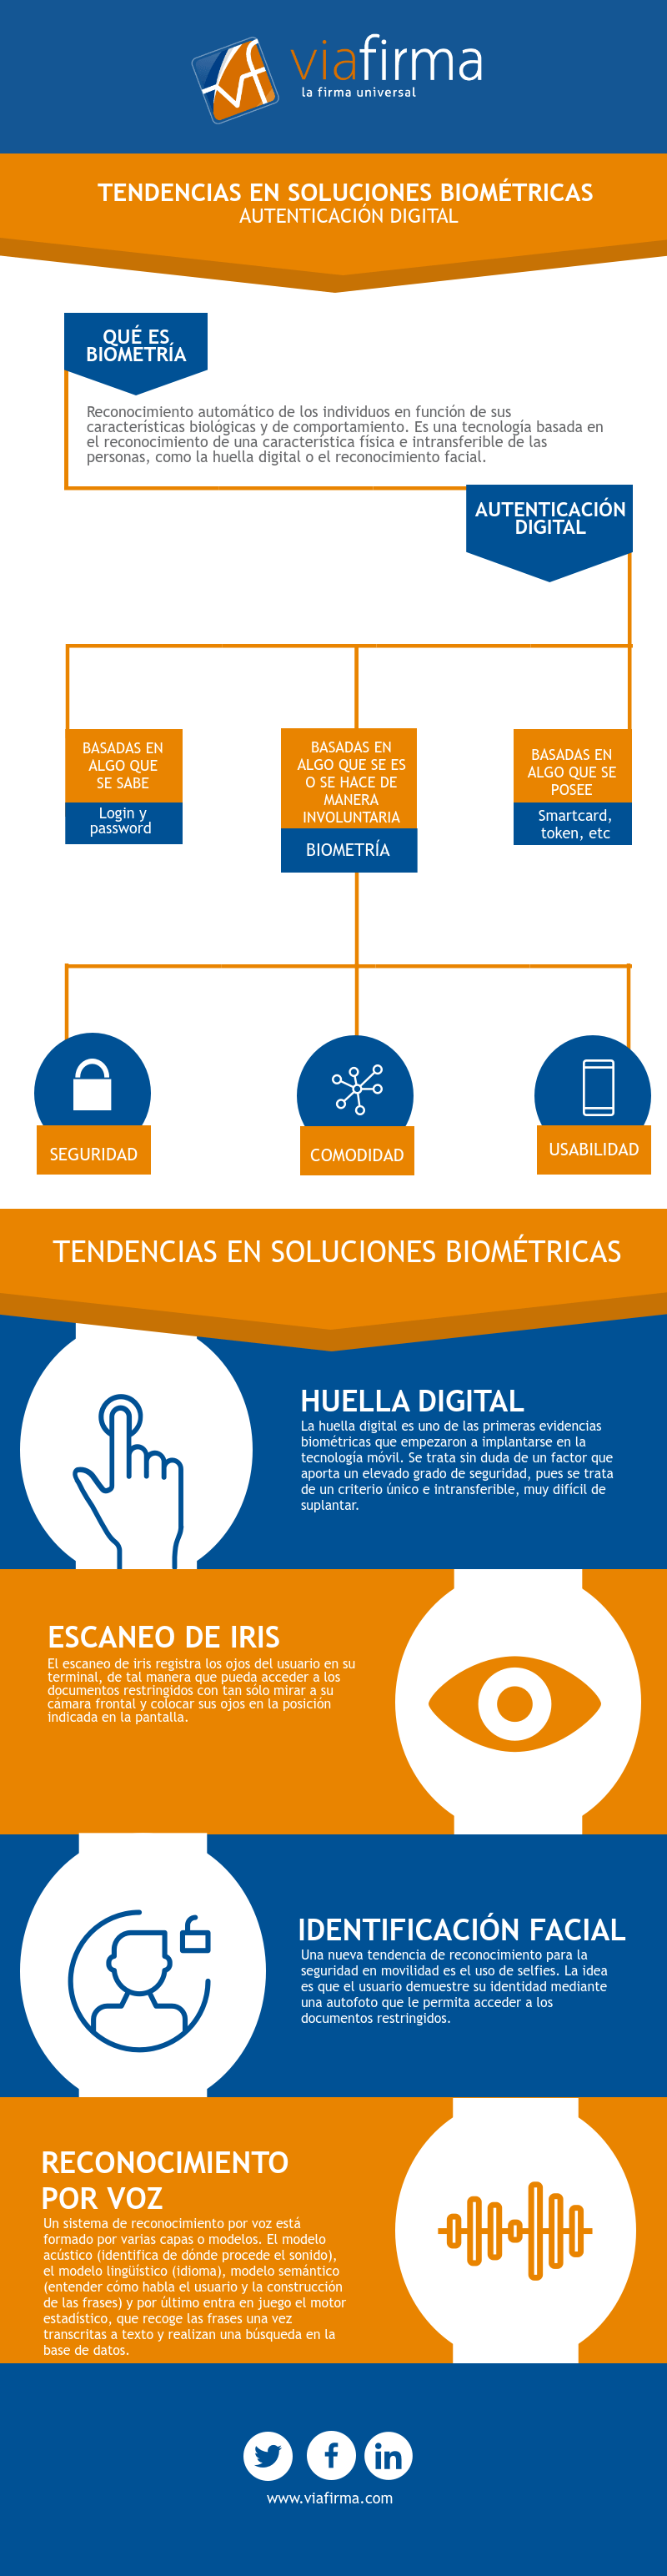 Tendencias Biometría